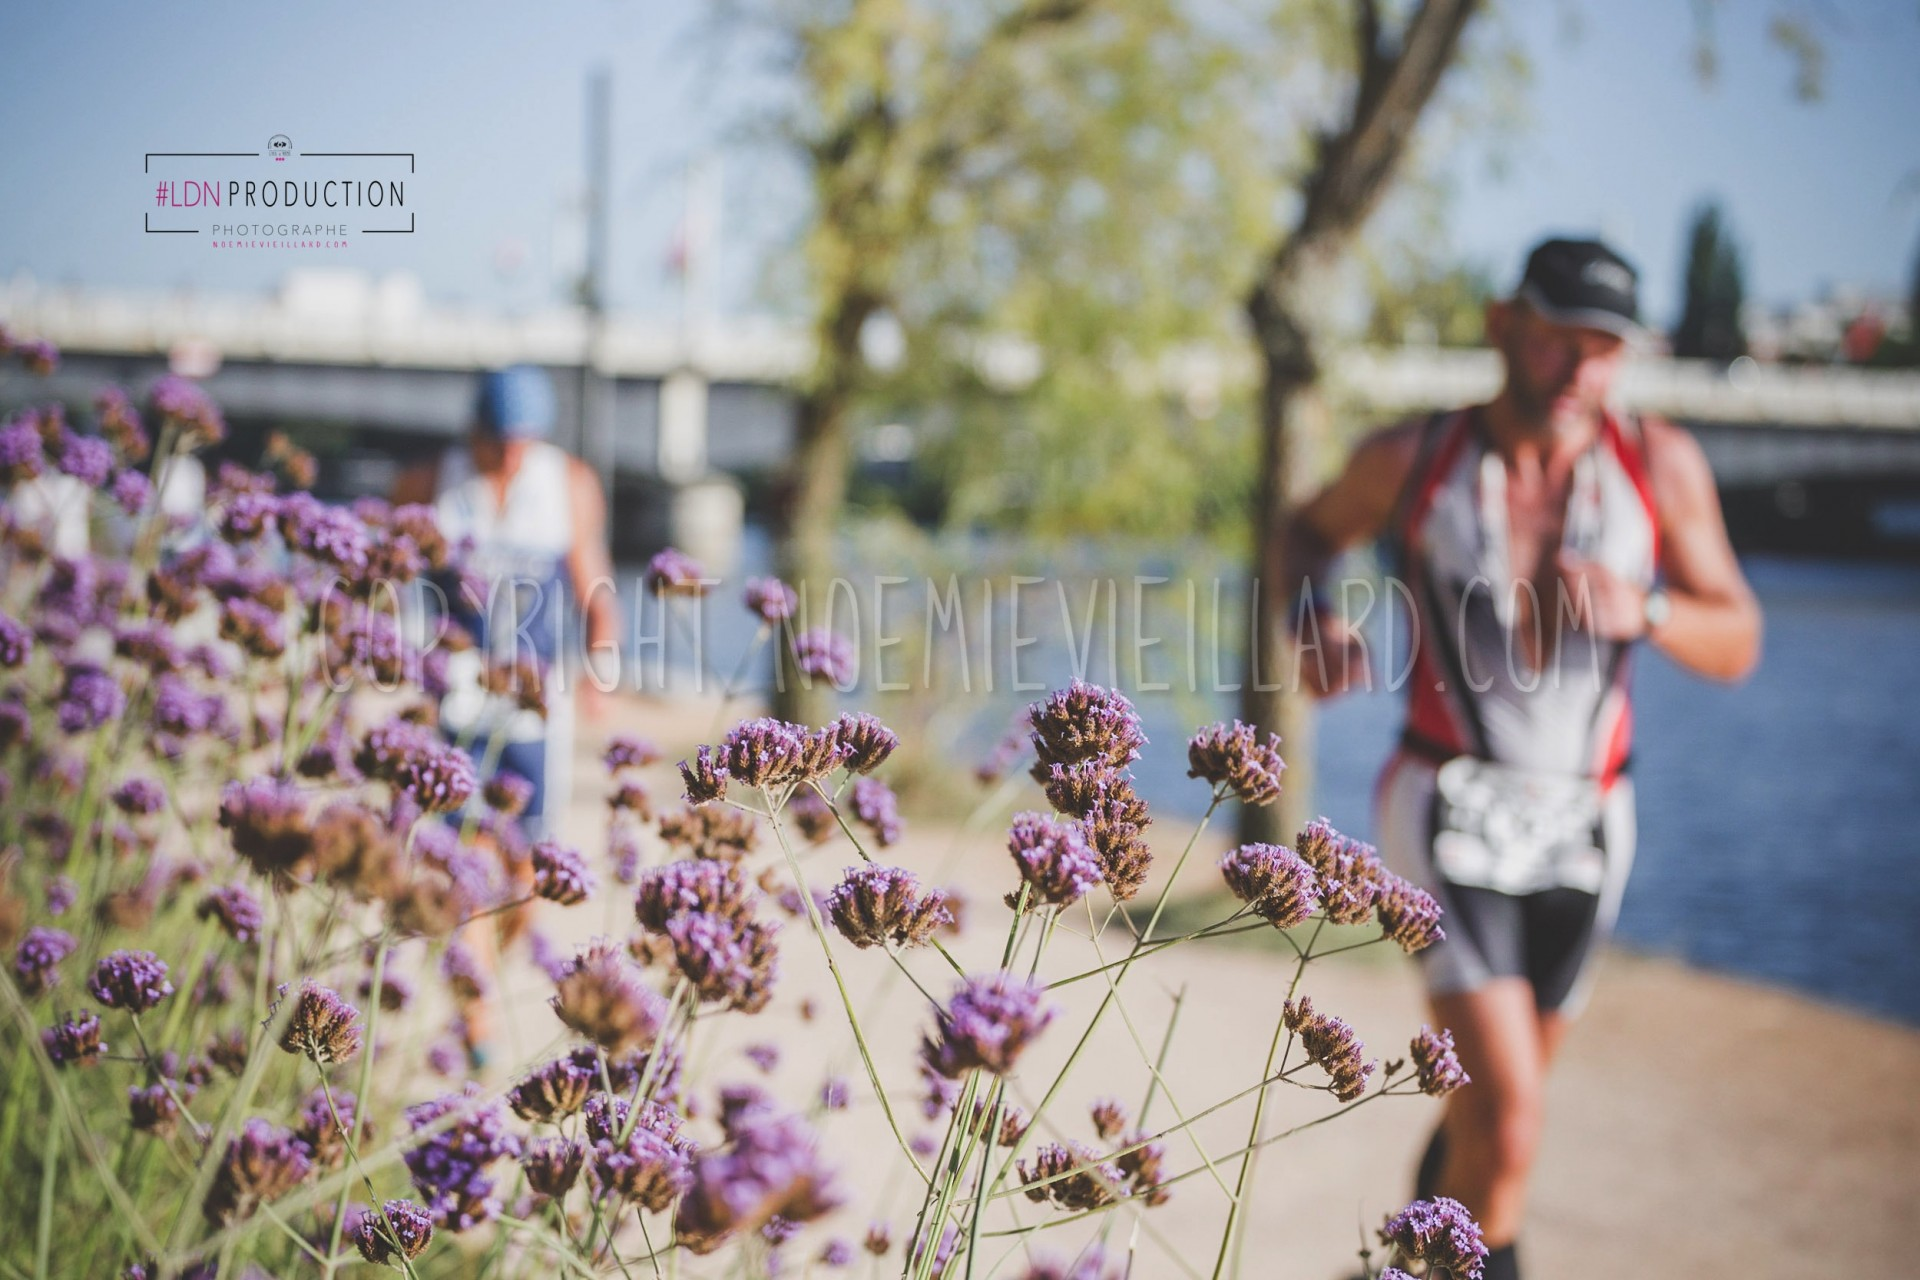 photo-ironman-vichy-2015©-noemie-vieillard-7224